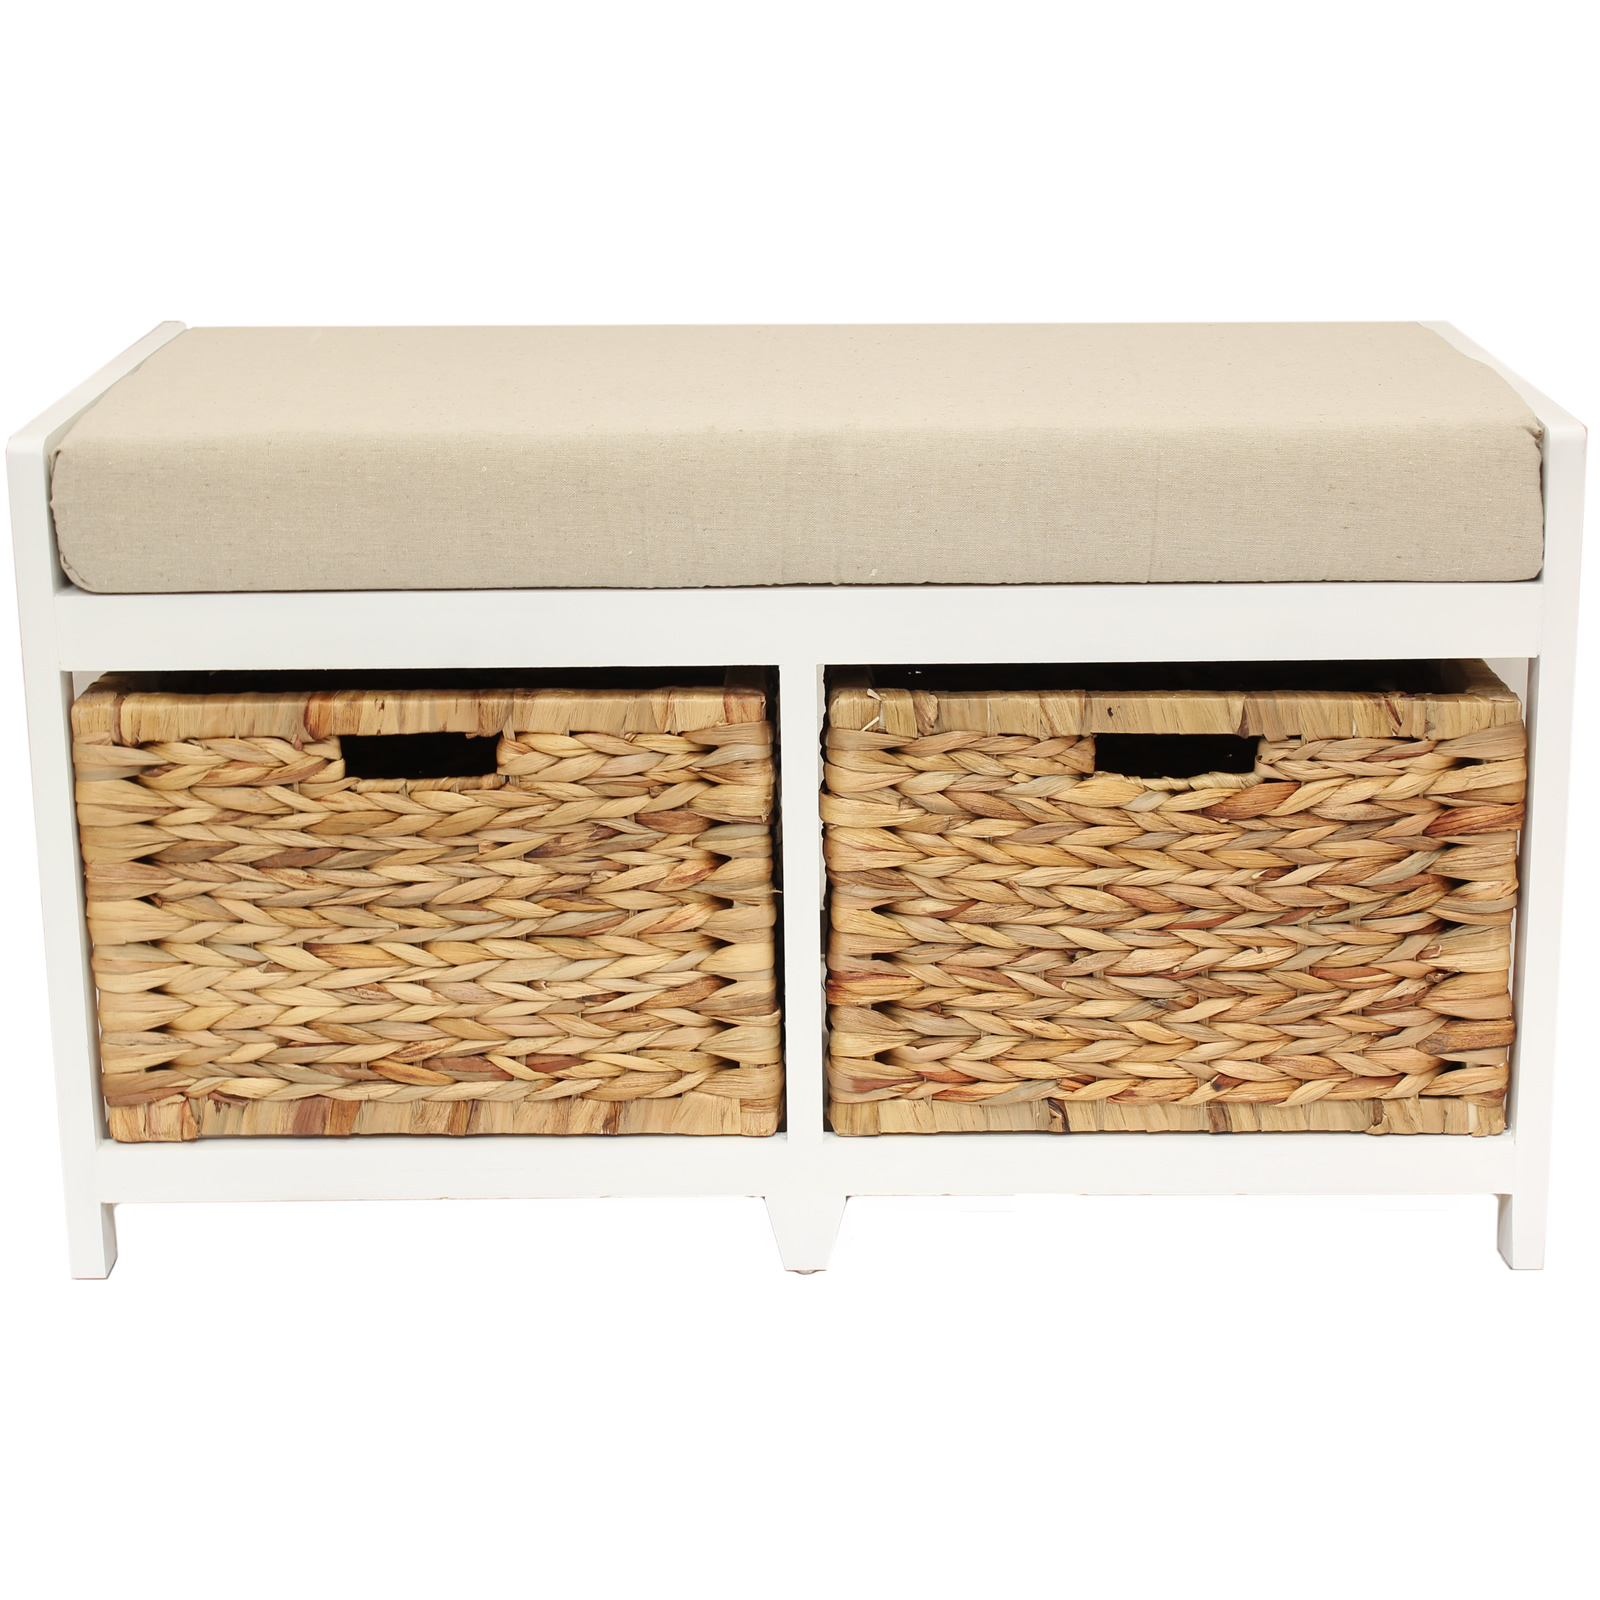 Home hallway bathroom bench seat with seagrass wicker storage baskets cushion ebay Storage bench with cushion